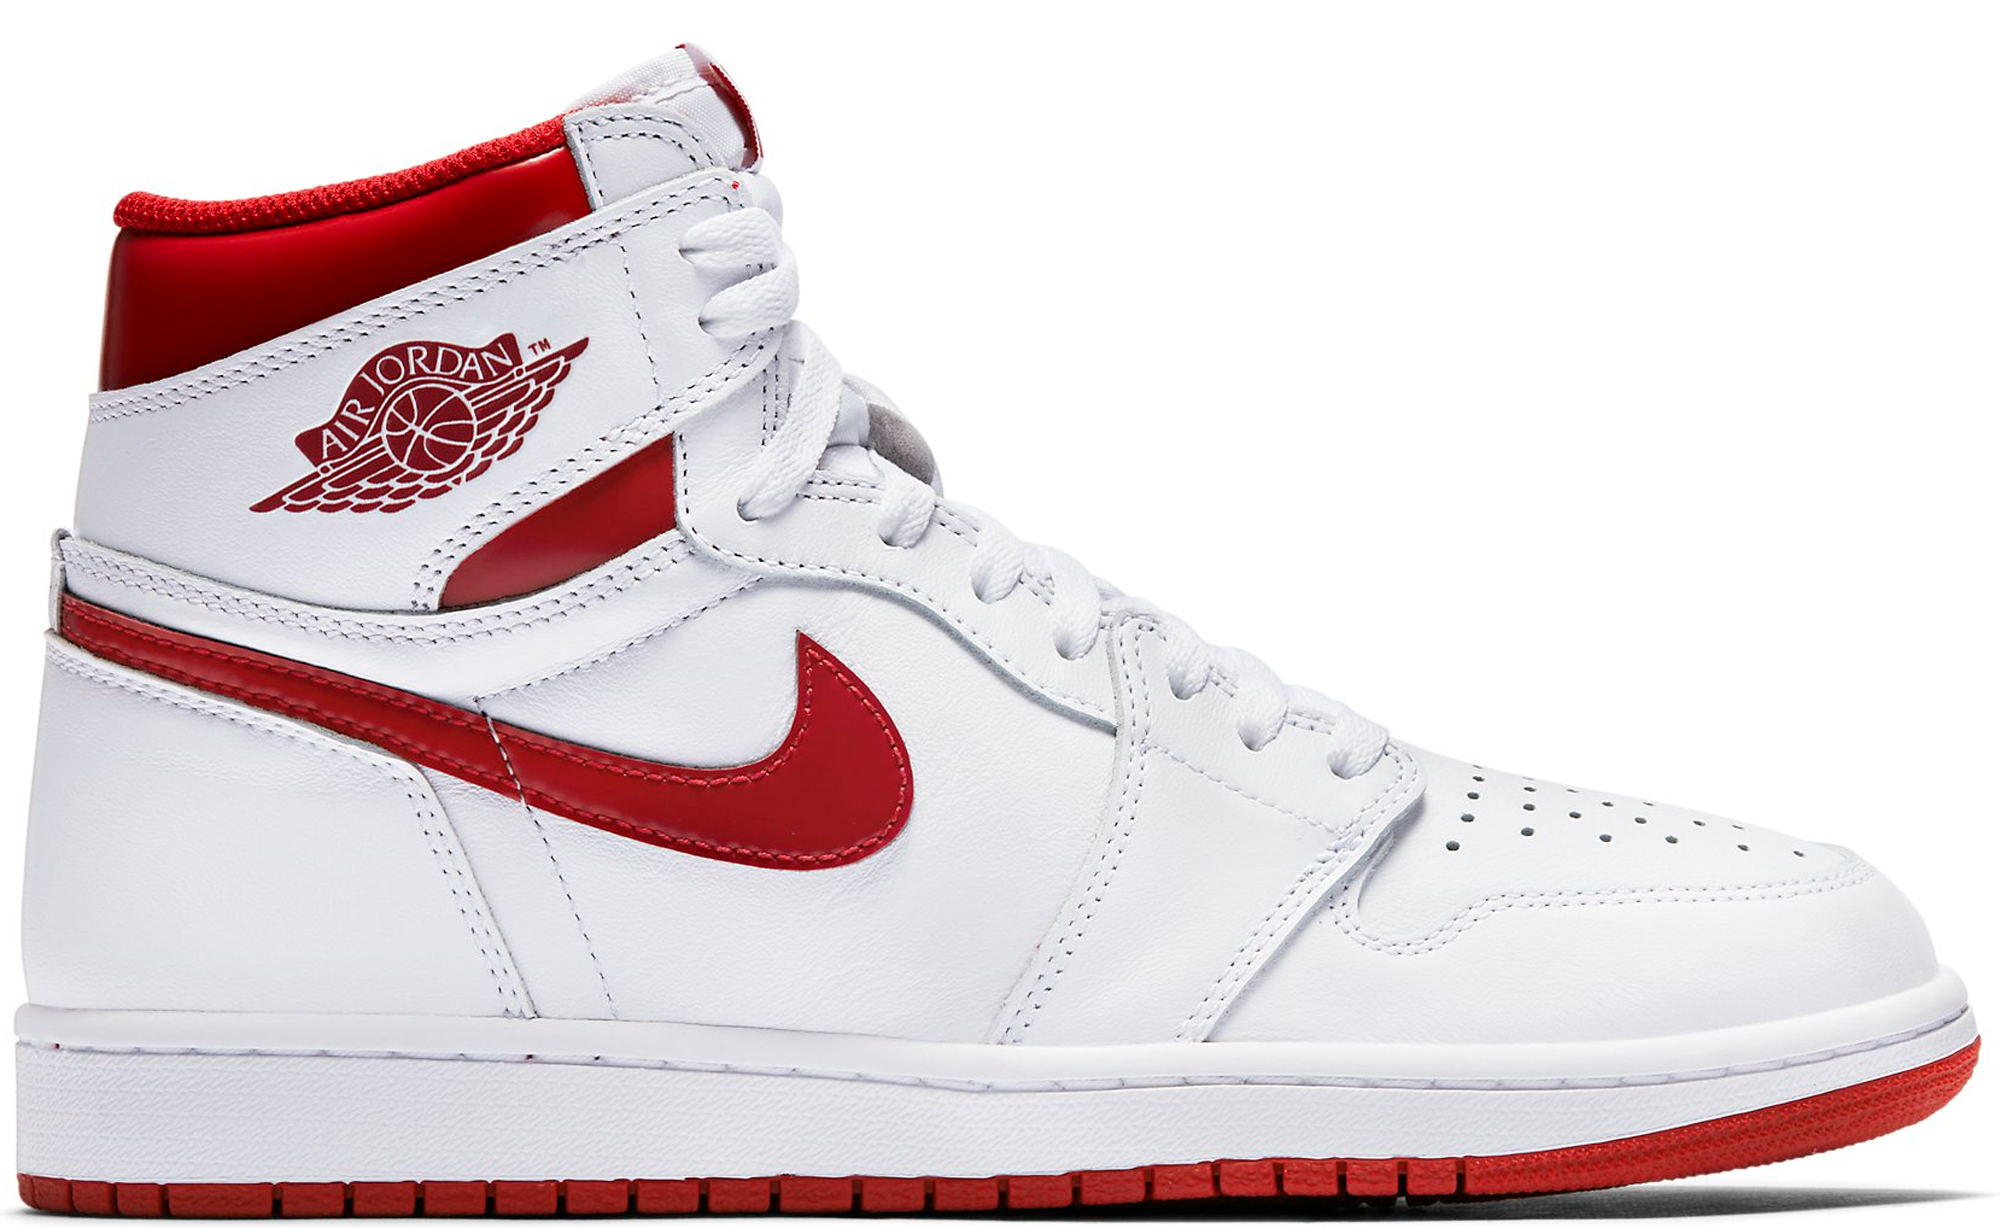 d48d7fc25e4 Air Jordan 1 Retro High OG Metallic Red (2017) - StockX News